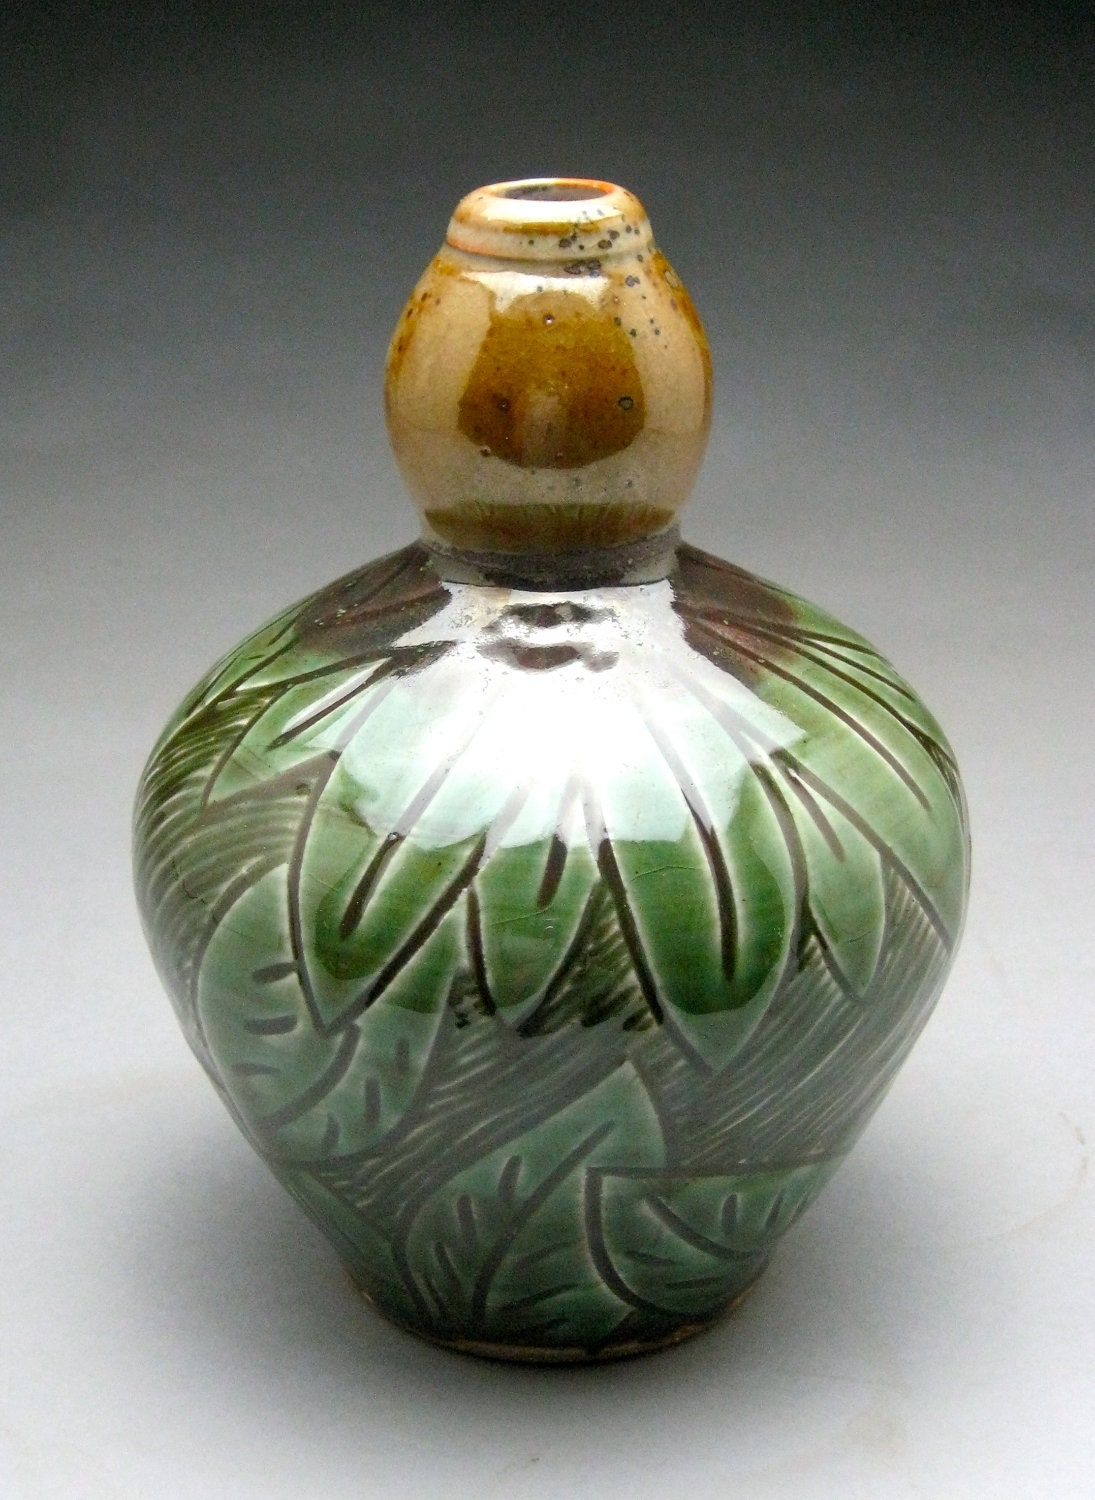 Green Stoneware Bottle with Carved Flowers and Leaves